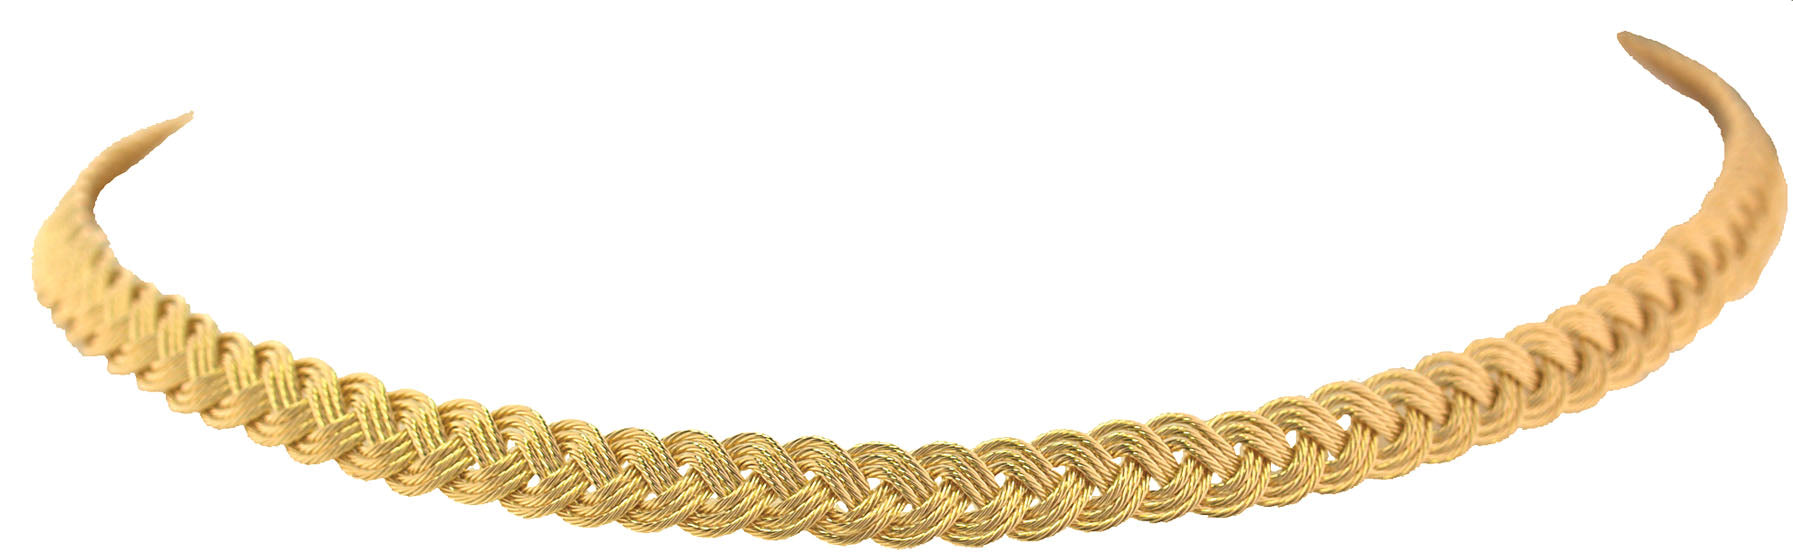 7mm Braid Necklace